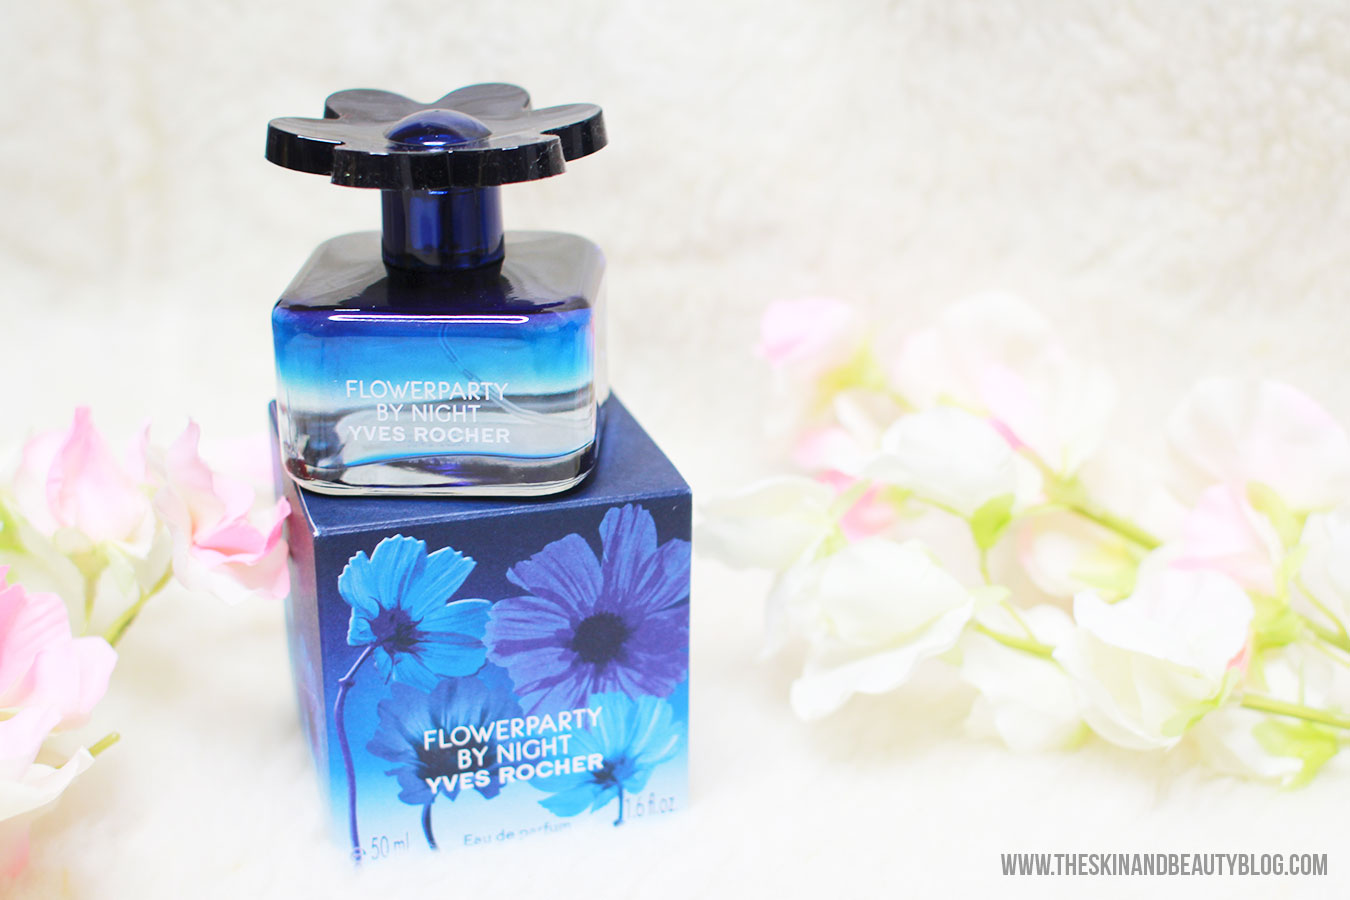 Yves Rocher Flowerparty By Night Eau de Parfum Review